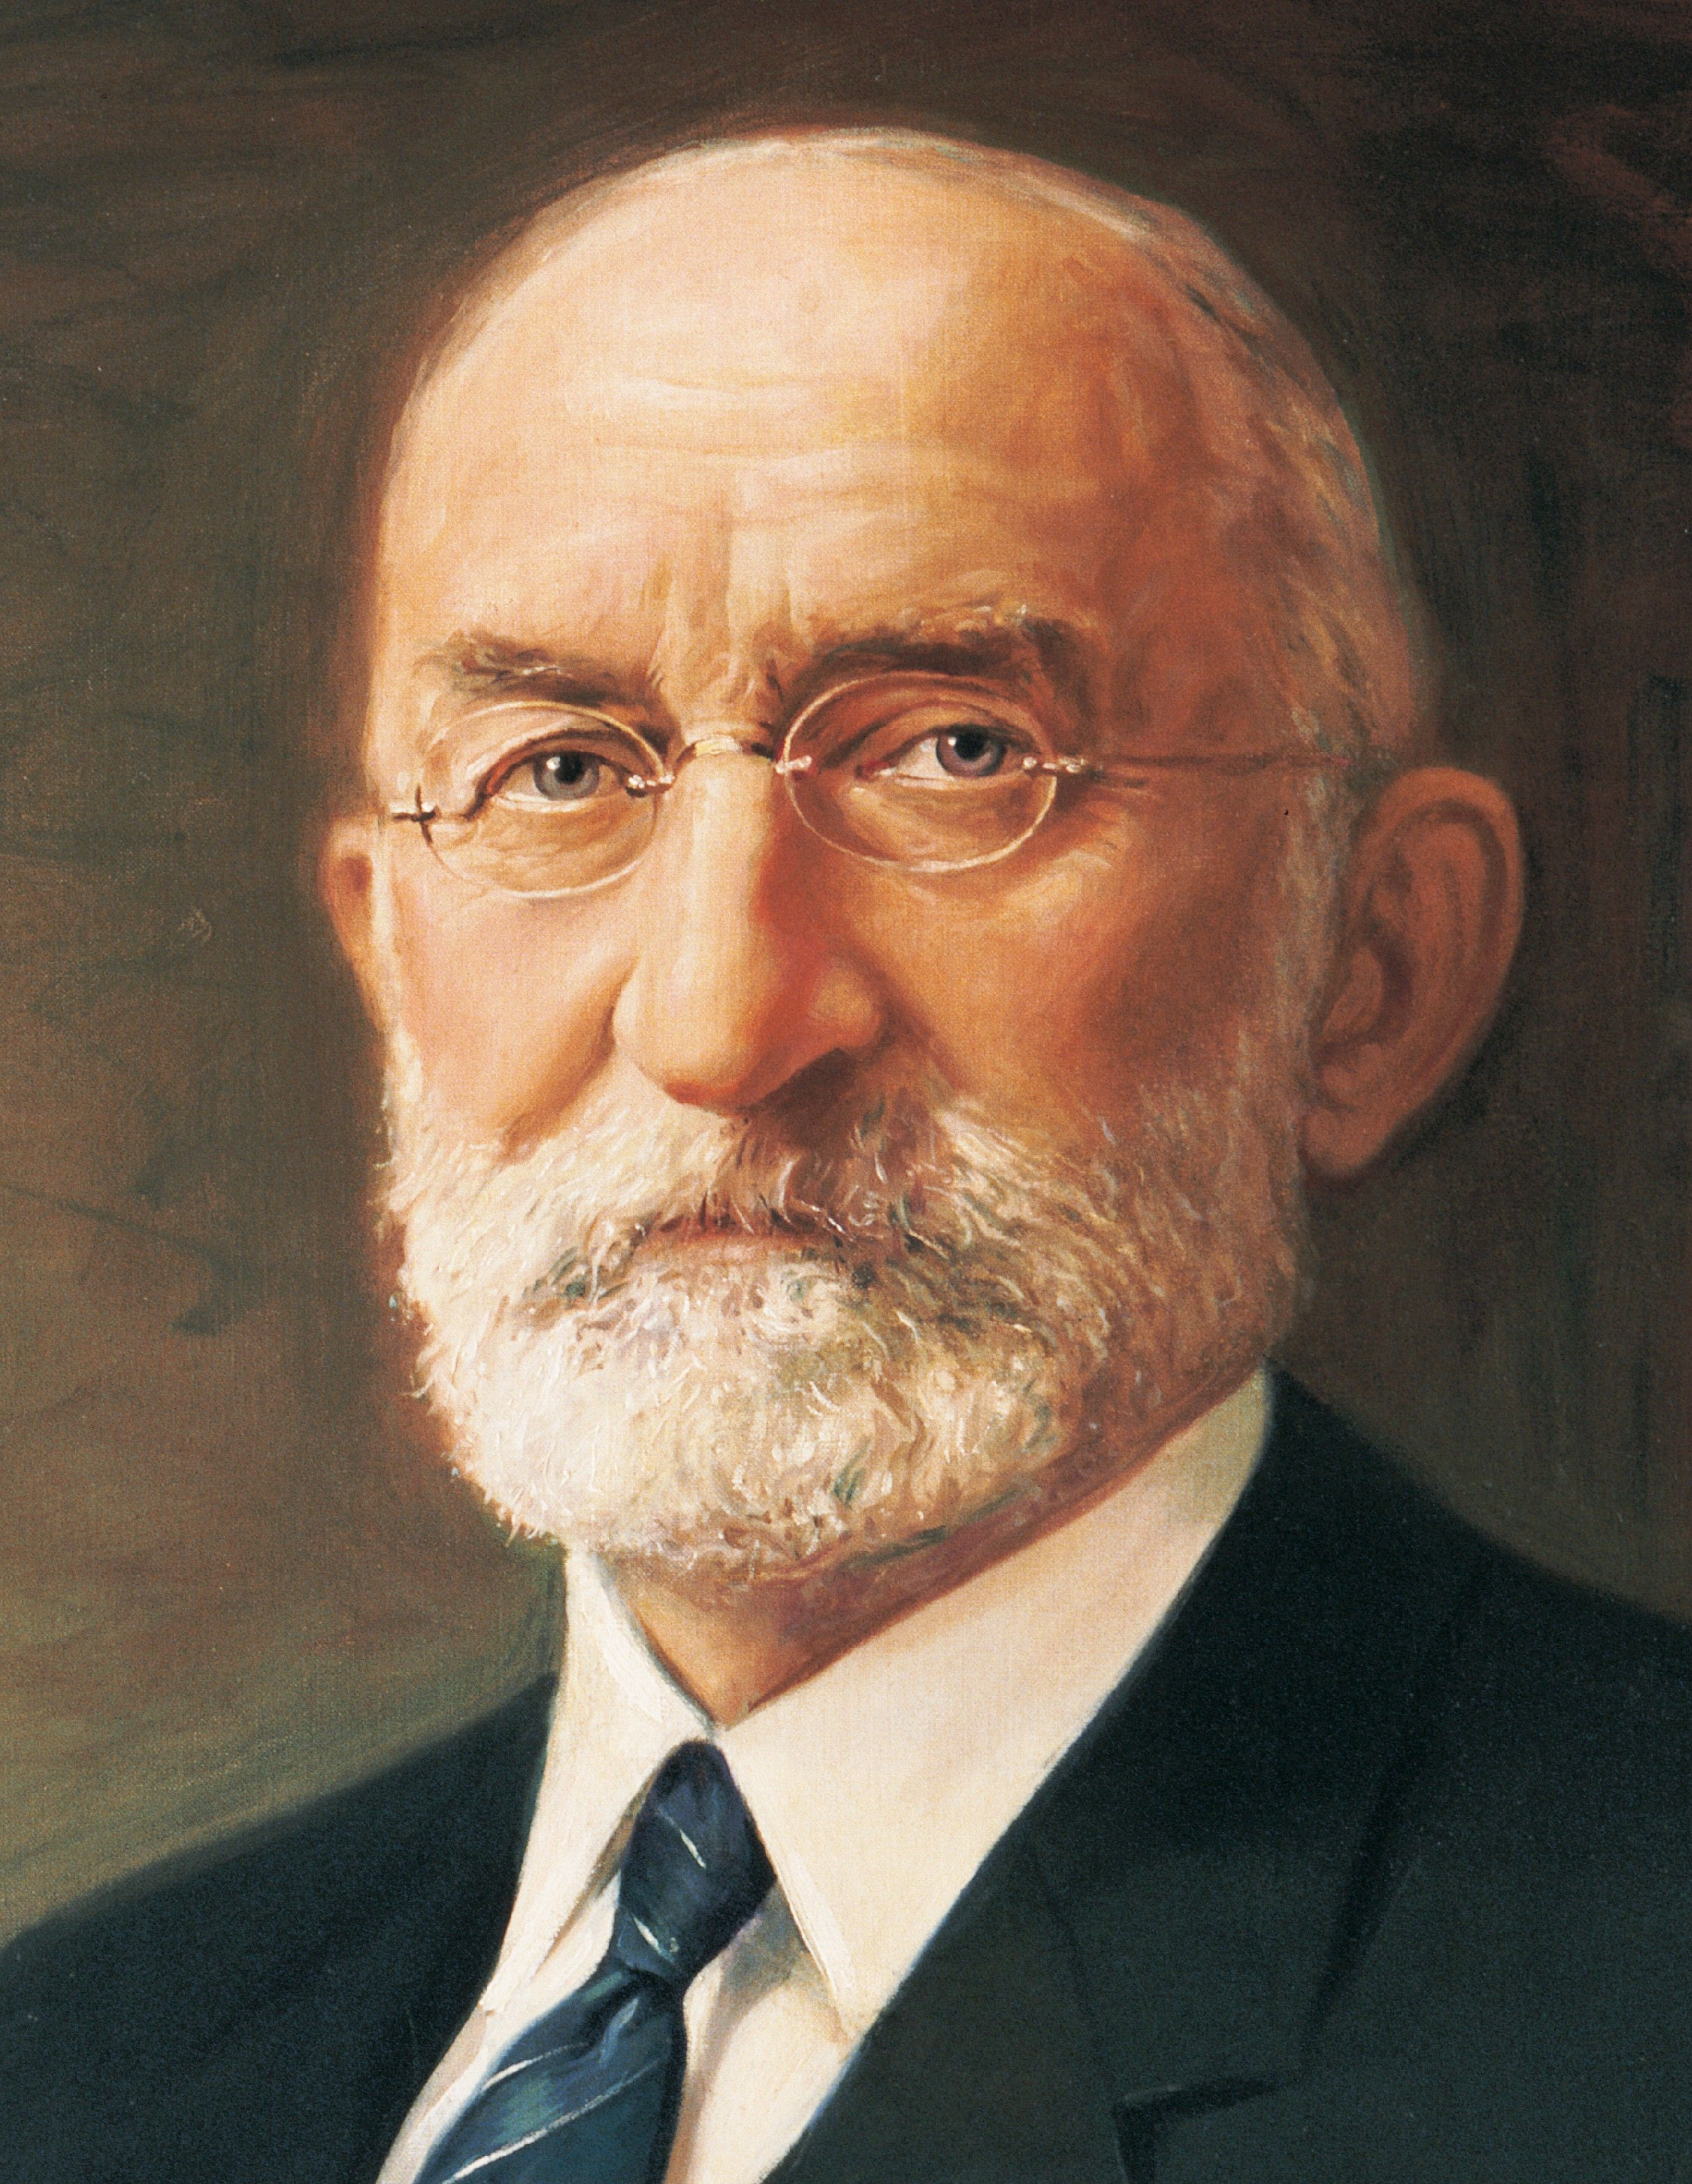 Heber J. Grant, by C. J. Fox; GAK 512; GAB 128; Our Heritage, 107–10. President Heber J. Grant was the seventh President of the Church from 1918 to 1945.